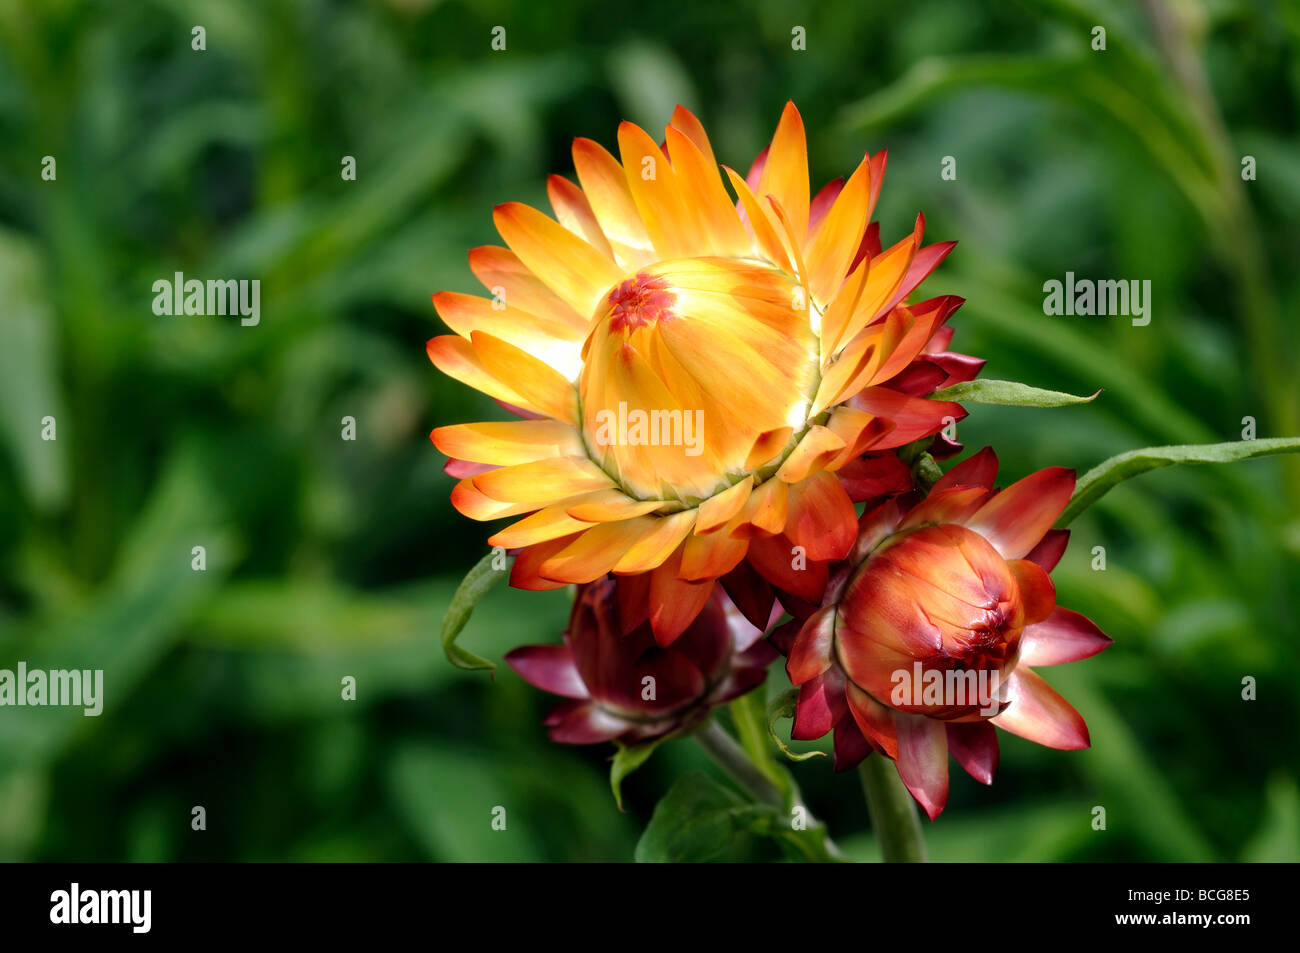 Helichrysum Forever mix Straw Flower - Stock Image